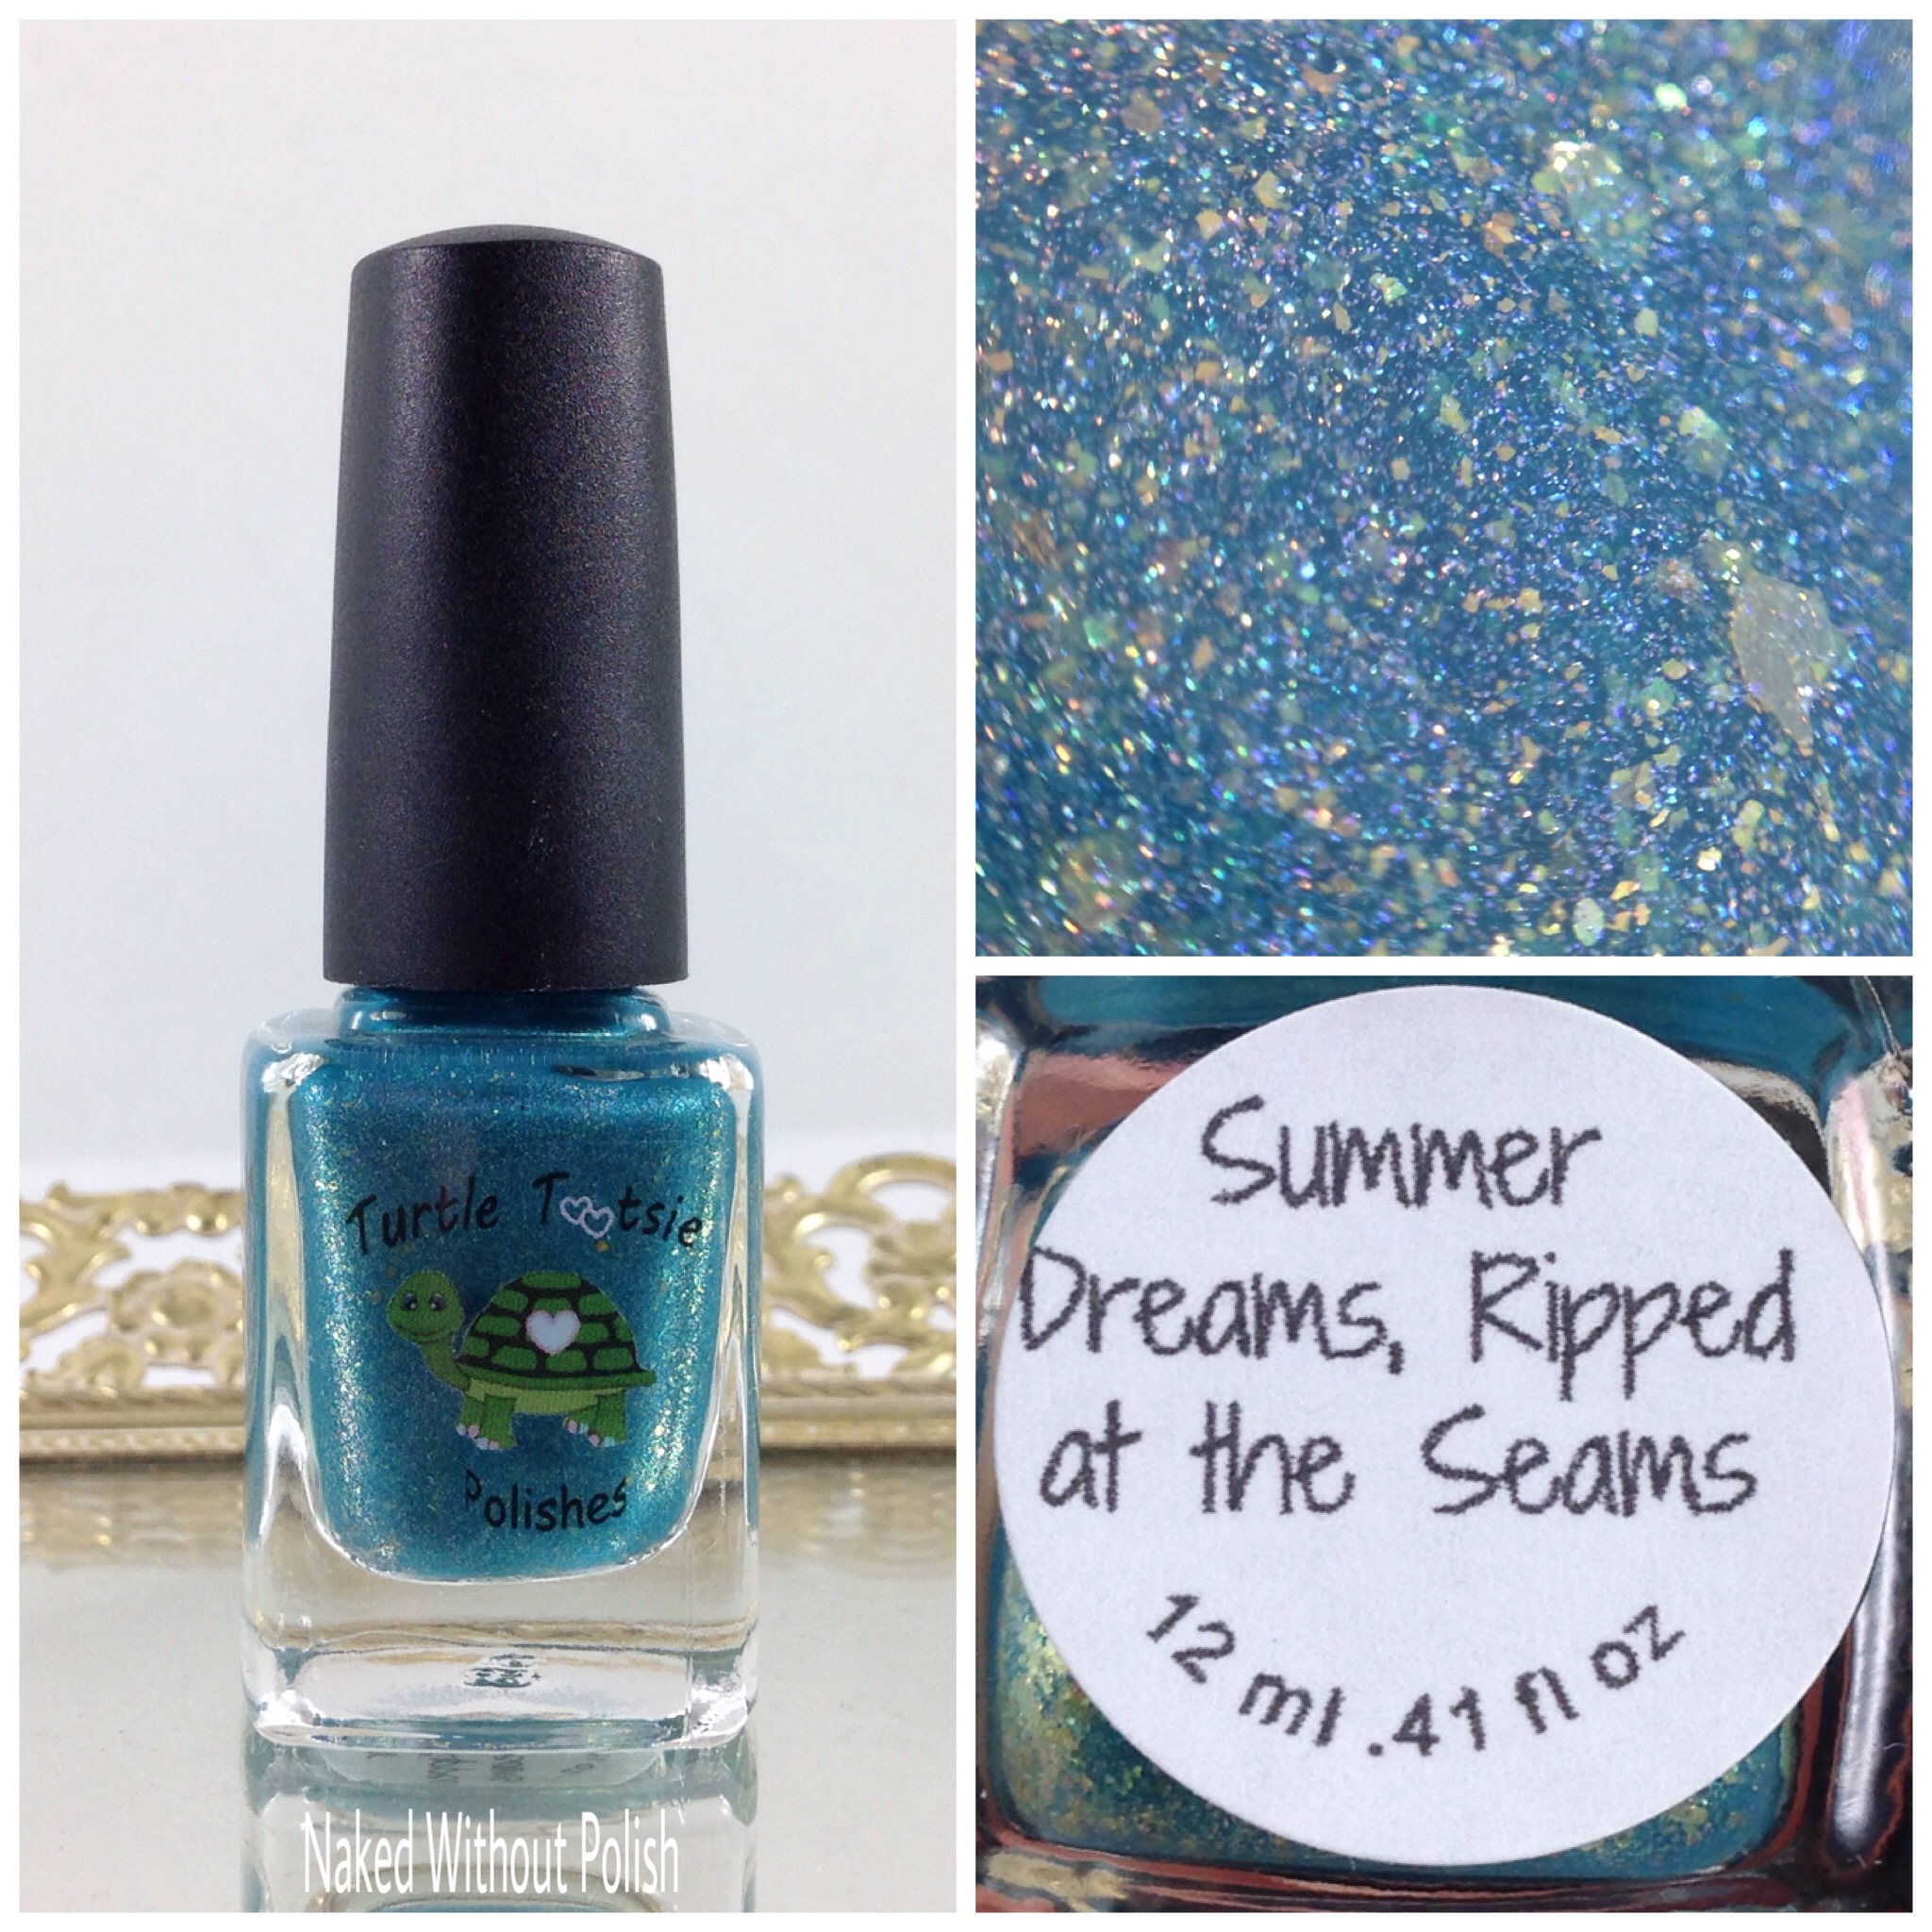 Turtle-Tootsie-Polishes-Summer-Dreams-Ripped-at-the-Seams-1